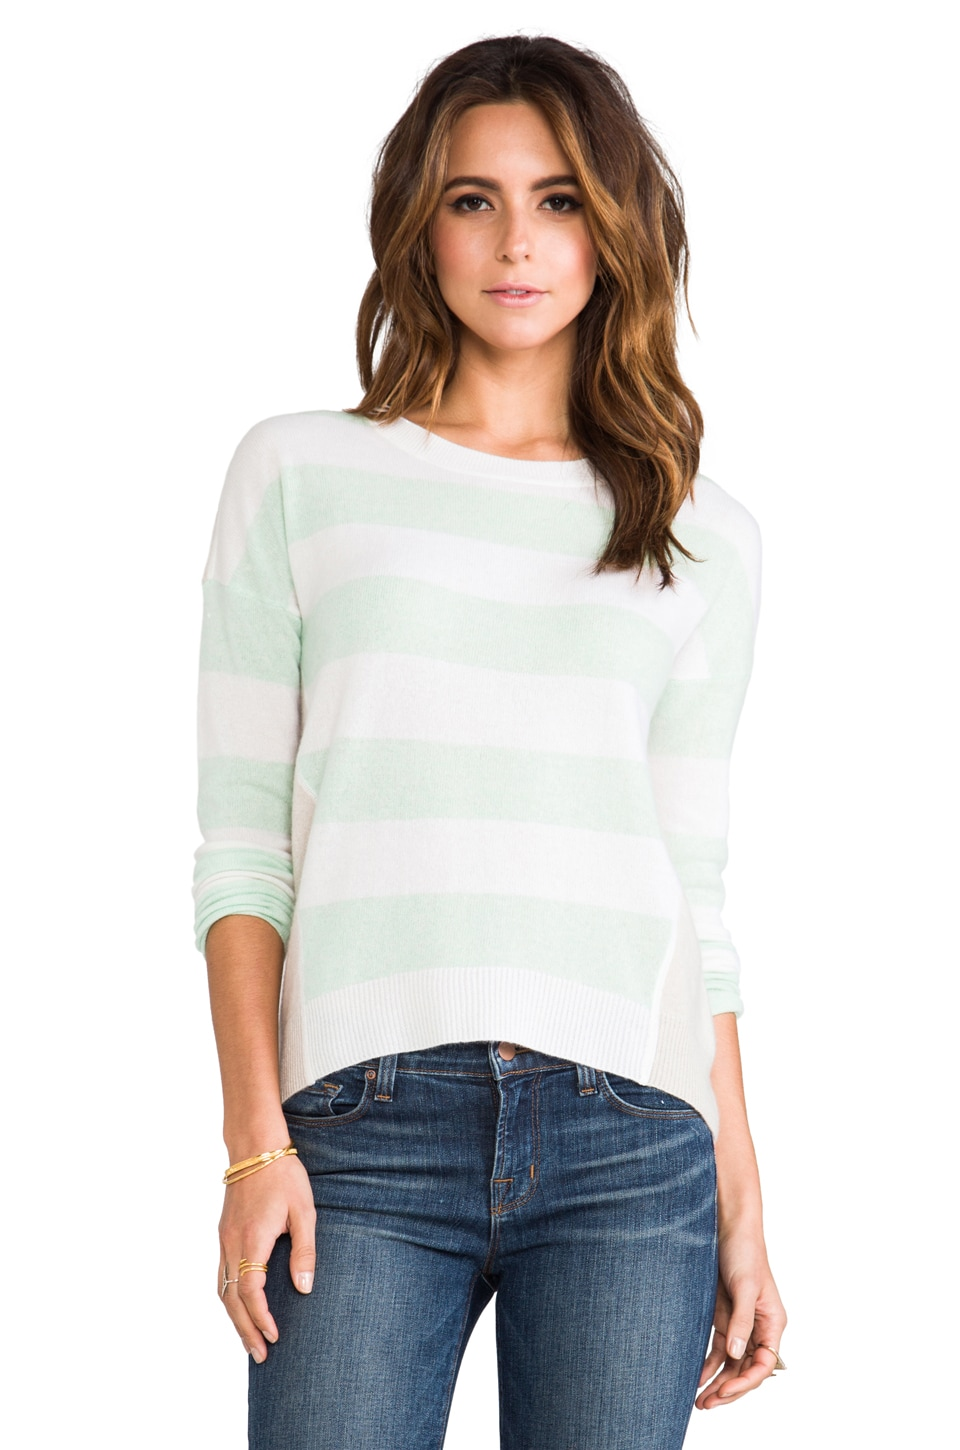 DUFFY Striped Sweater in White/Water Ice/Swansdown